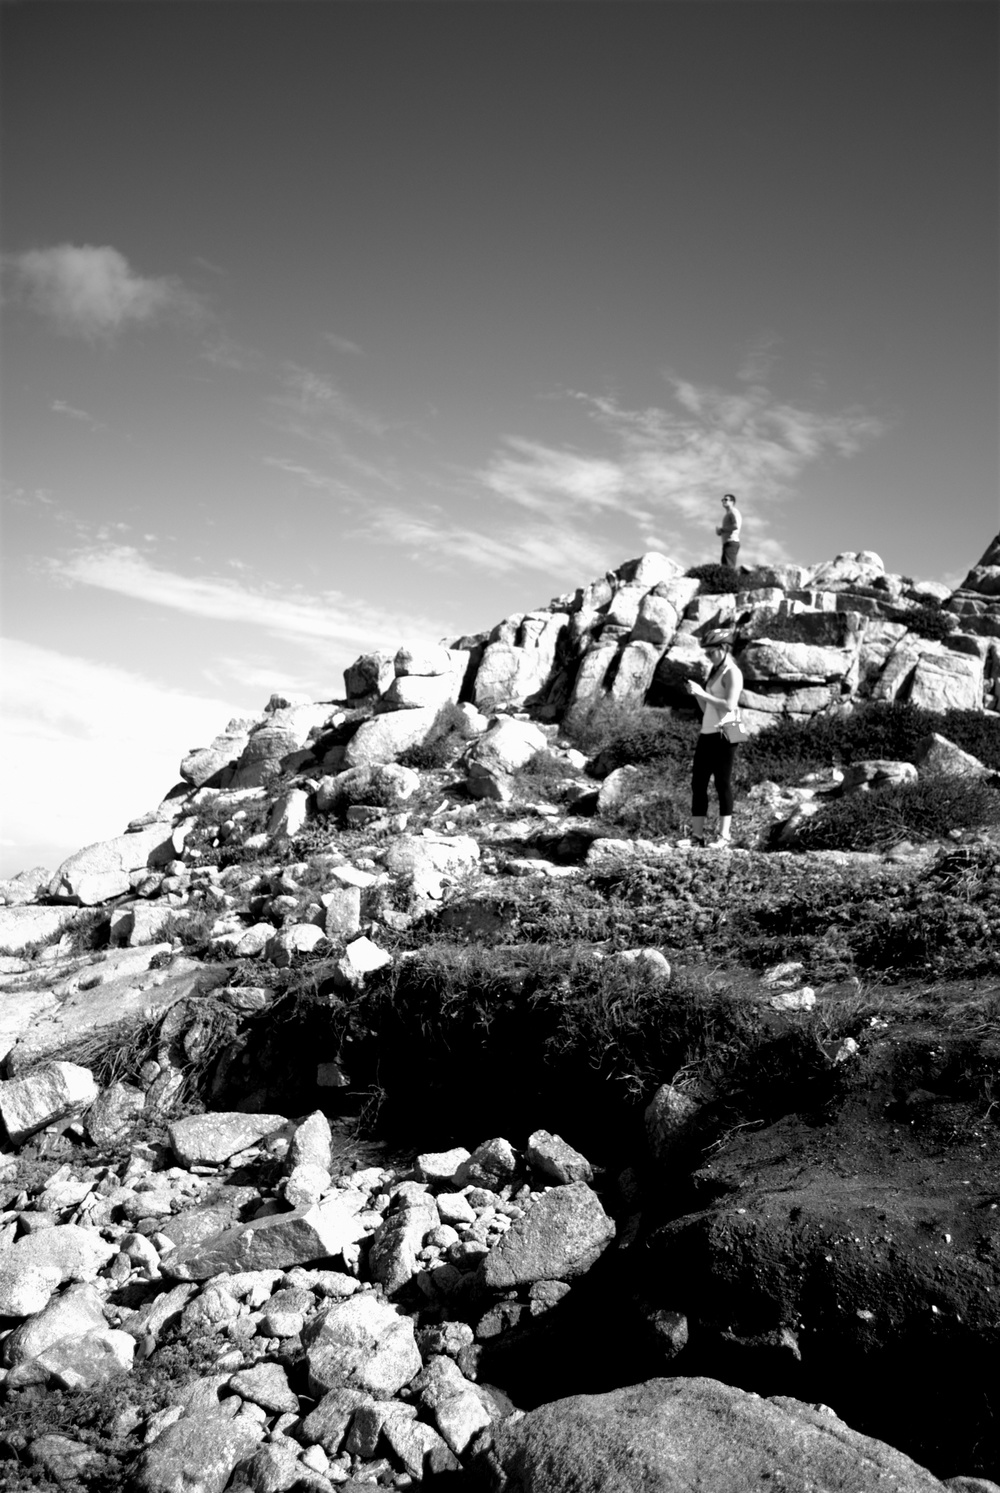 China rock (point of interest #8 on 17 mile drive)